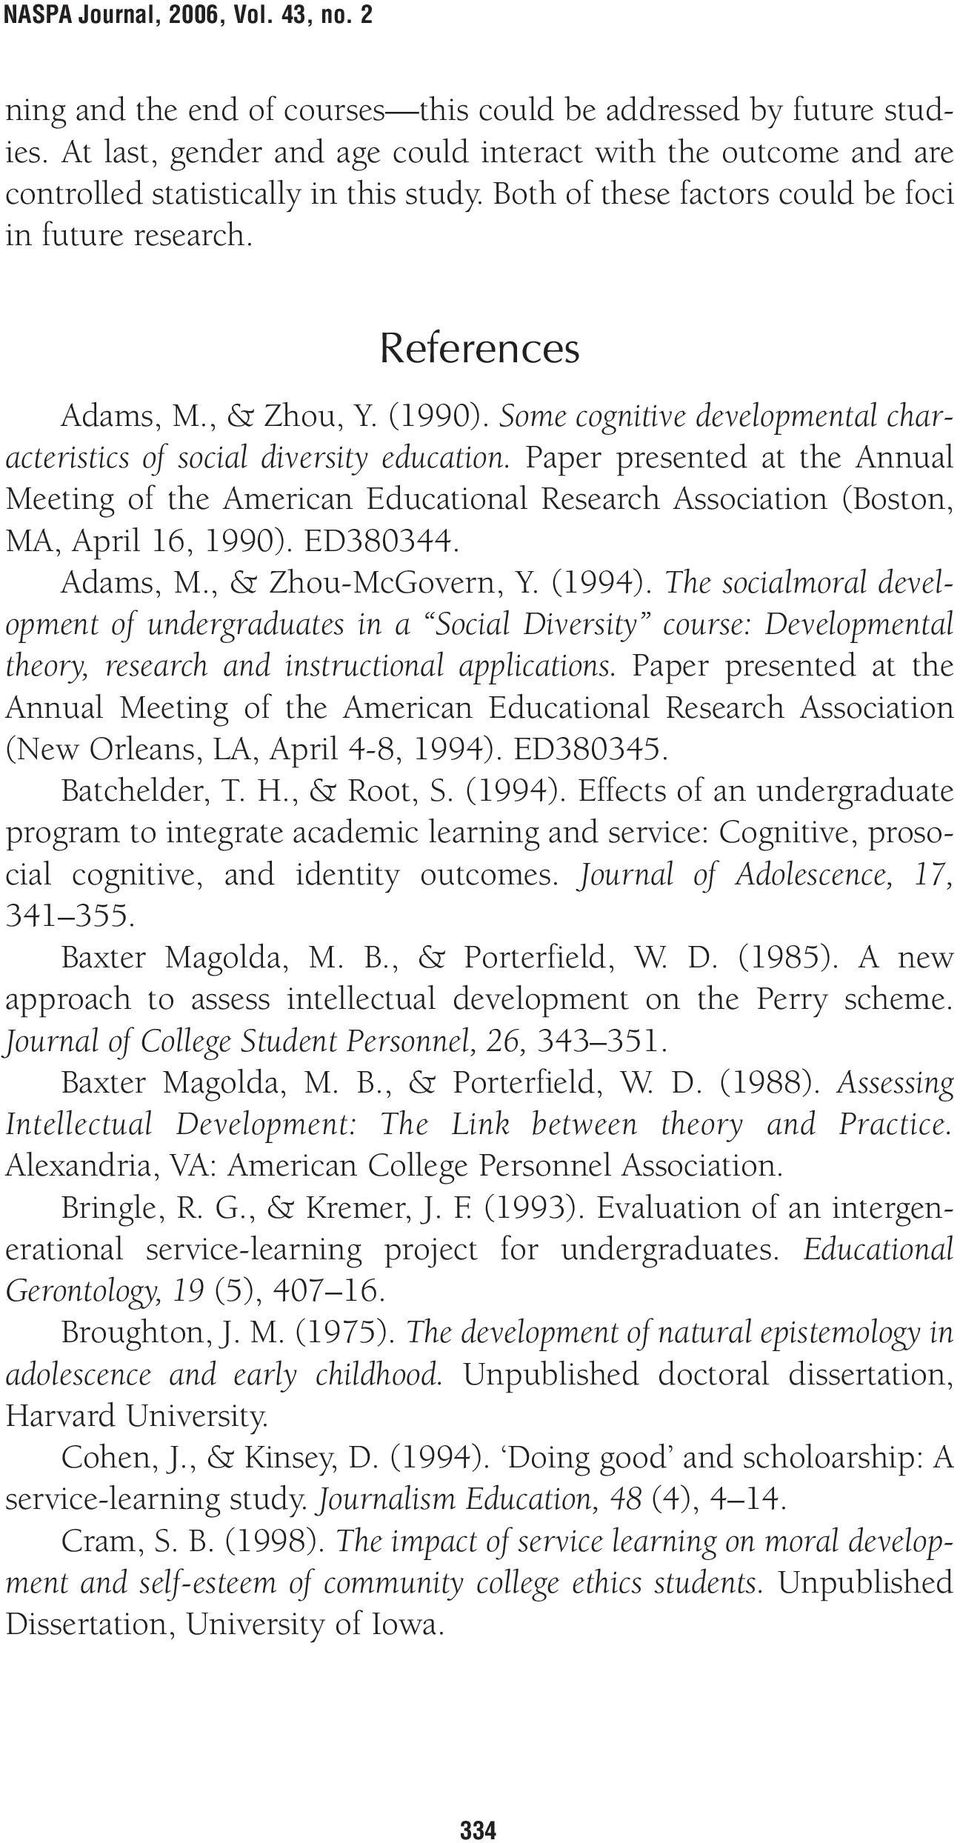 Paper presented at the Annual Meeting of the American Educational Research Association (Boston, MA, April 16, 1990). ED380344. Adams, M., & Zhou-McGovern, Y. (1994).